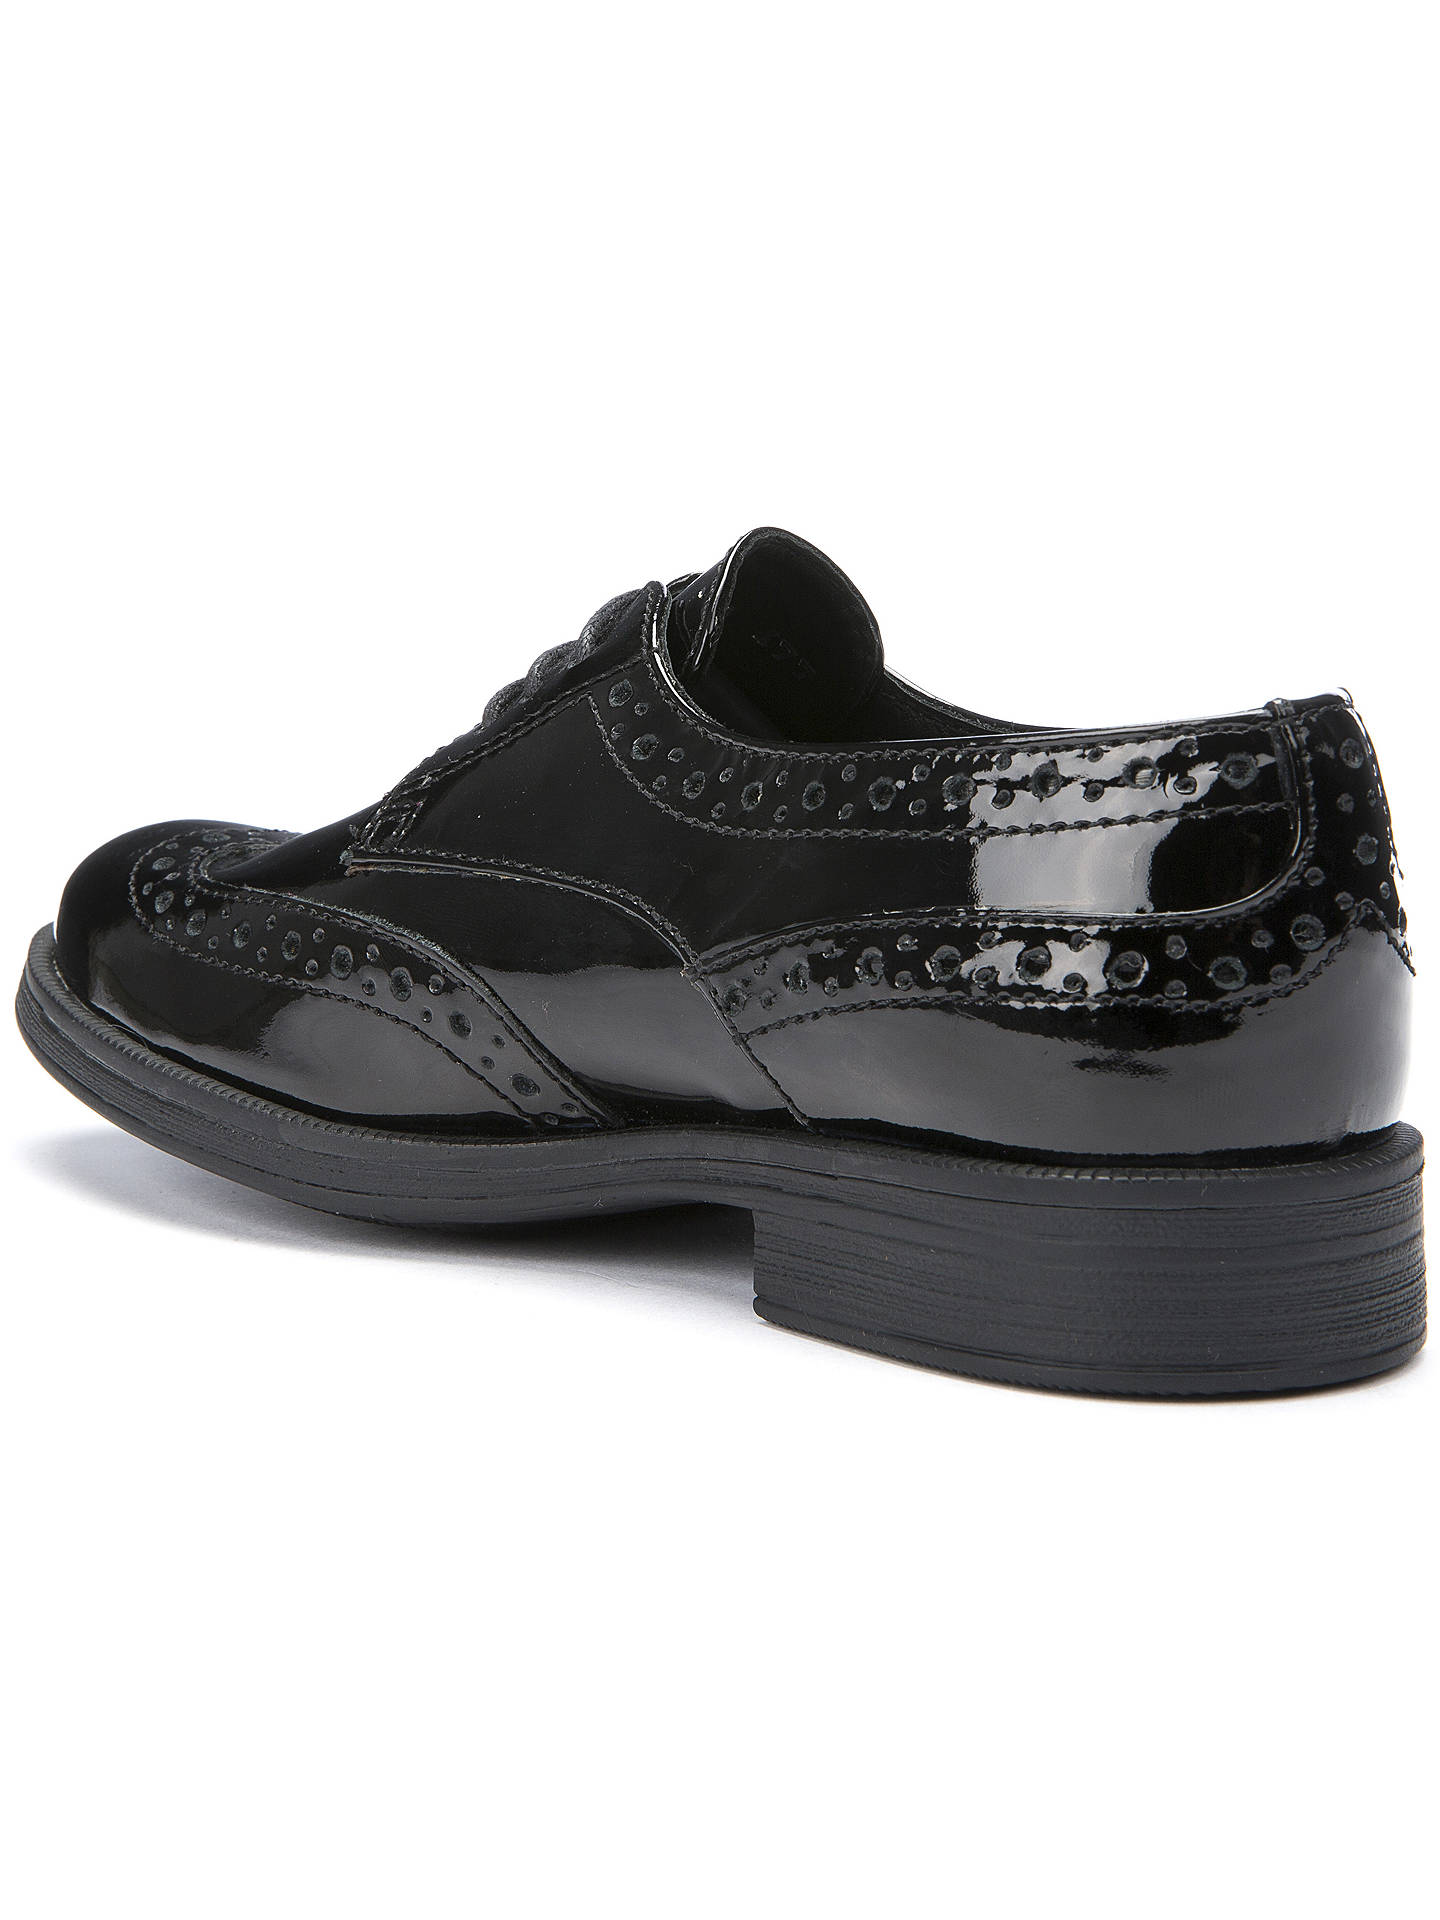 BuyGeox Lace-Up Brogue, Patent Black, 30 Online at johnlewis.com